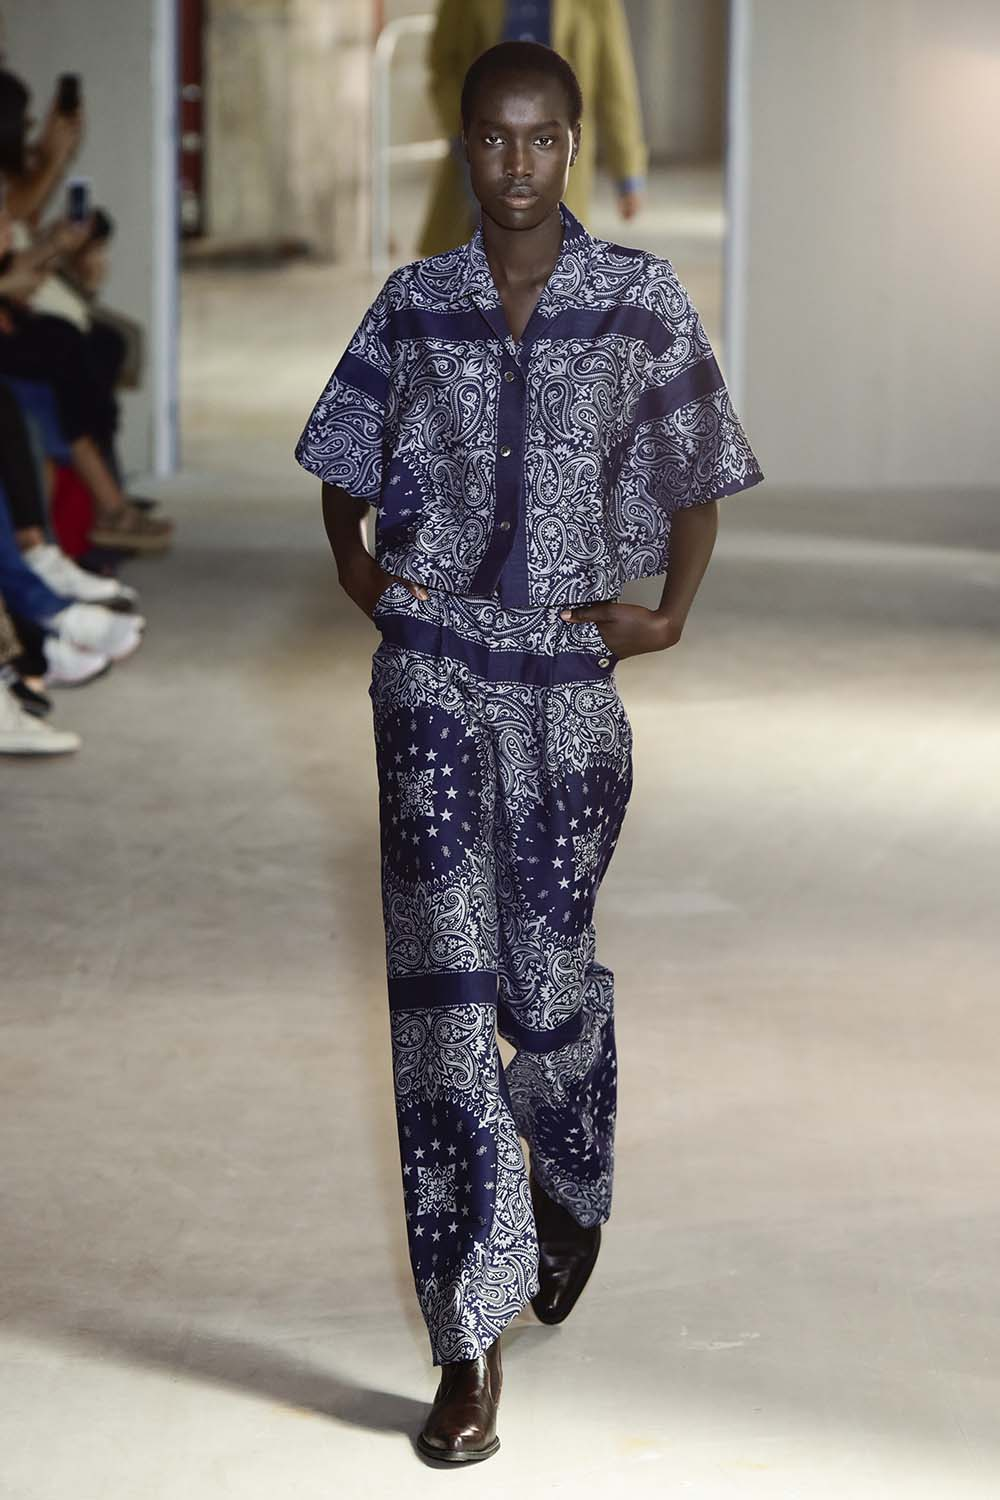 Etudes Paris Fashion Week Men's SS19 - Sagaboi - Look 7